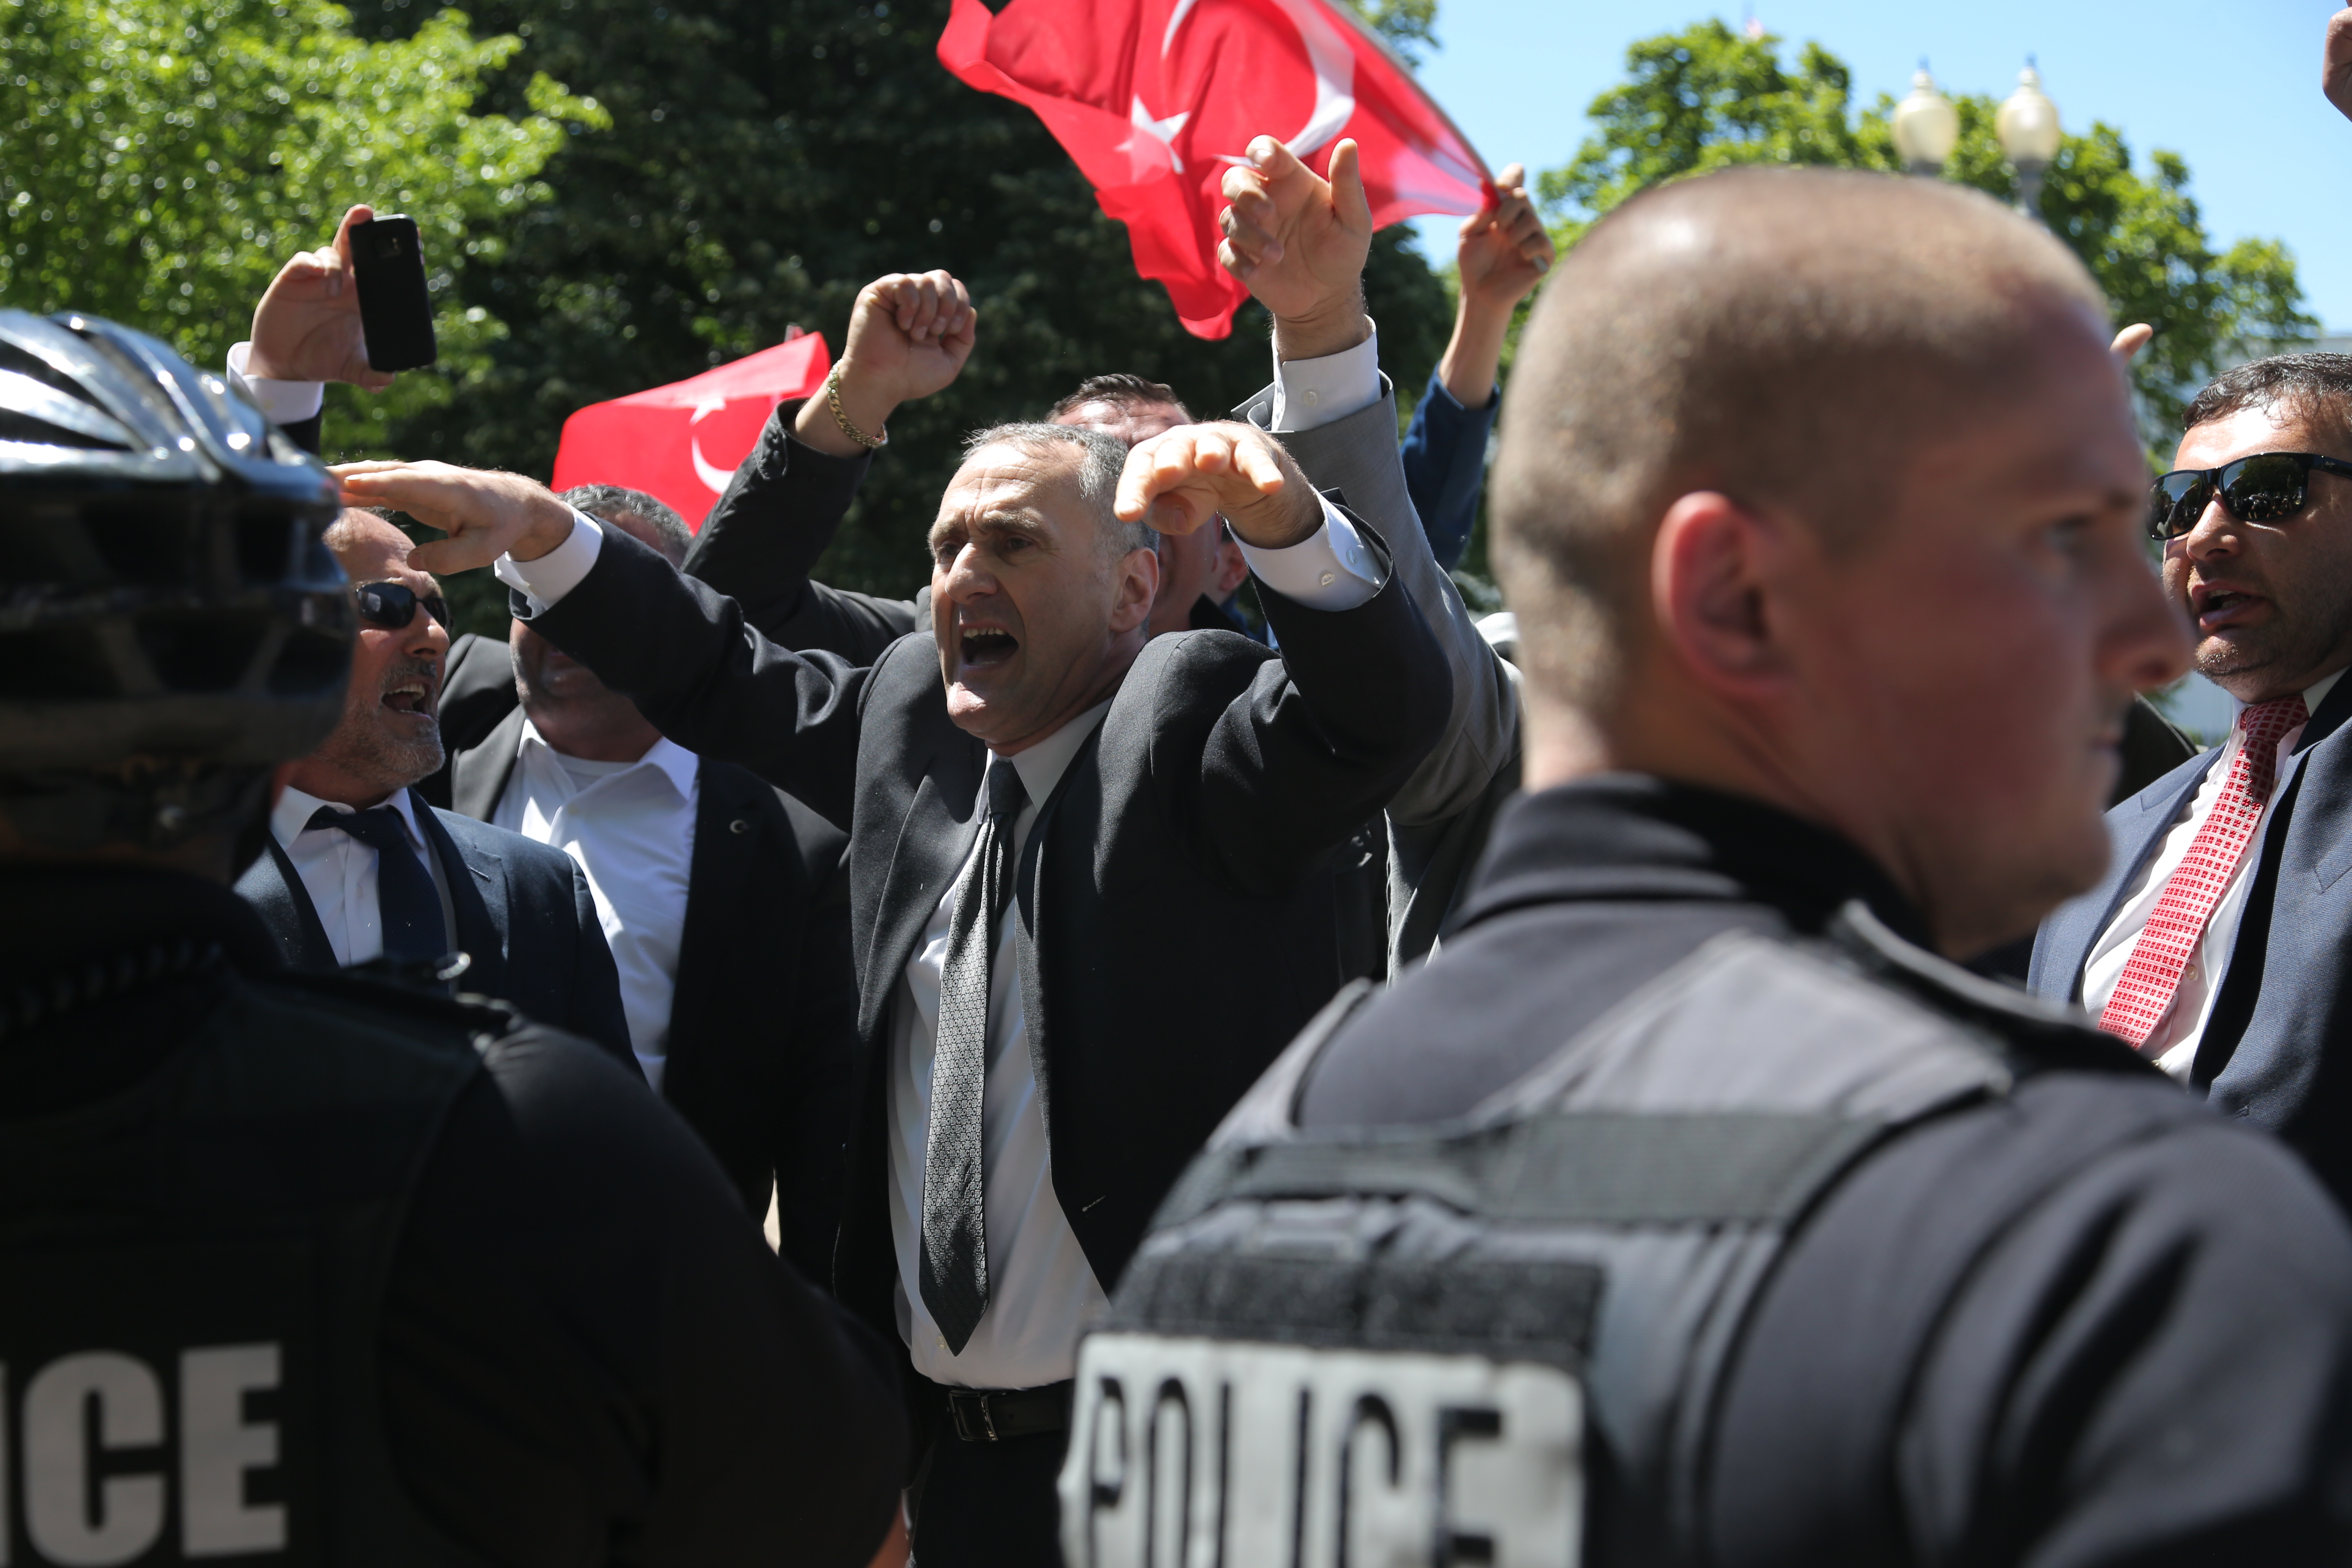 Supporters of Turkish President Recep Tayyip Erdogan react to anti-Erdogan supporters on the other side of a line of police officers outside the White House in Washington, D.C., May 16, 2017.